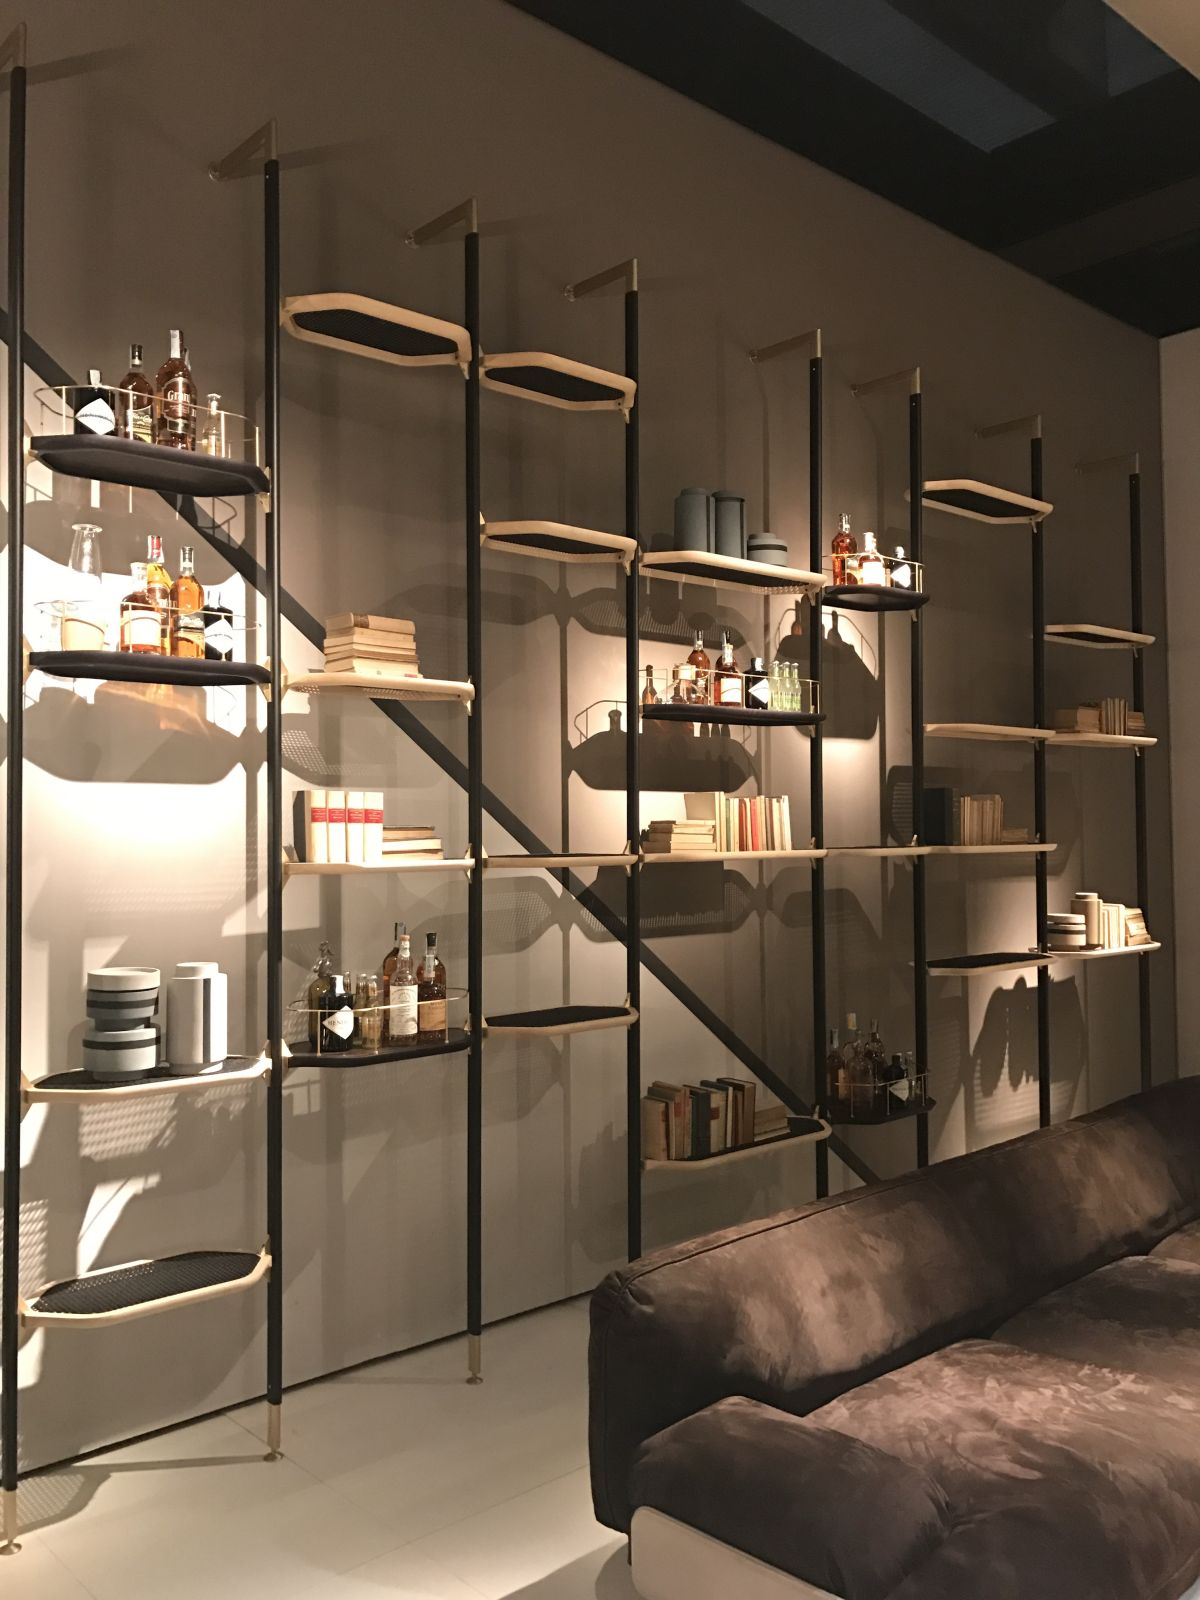 Display multiple shelves at various different heights to create a unique and asymmetrical installation